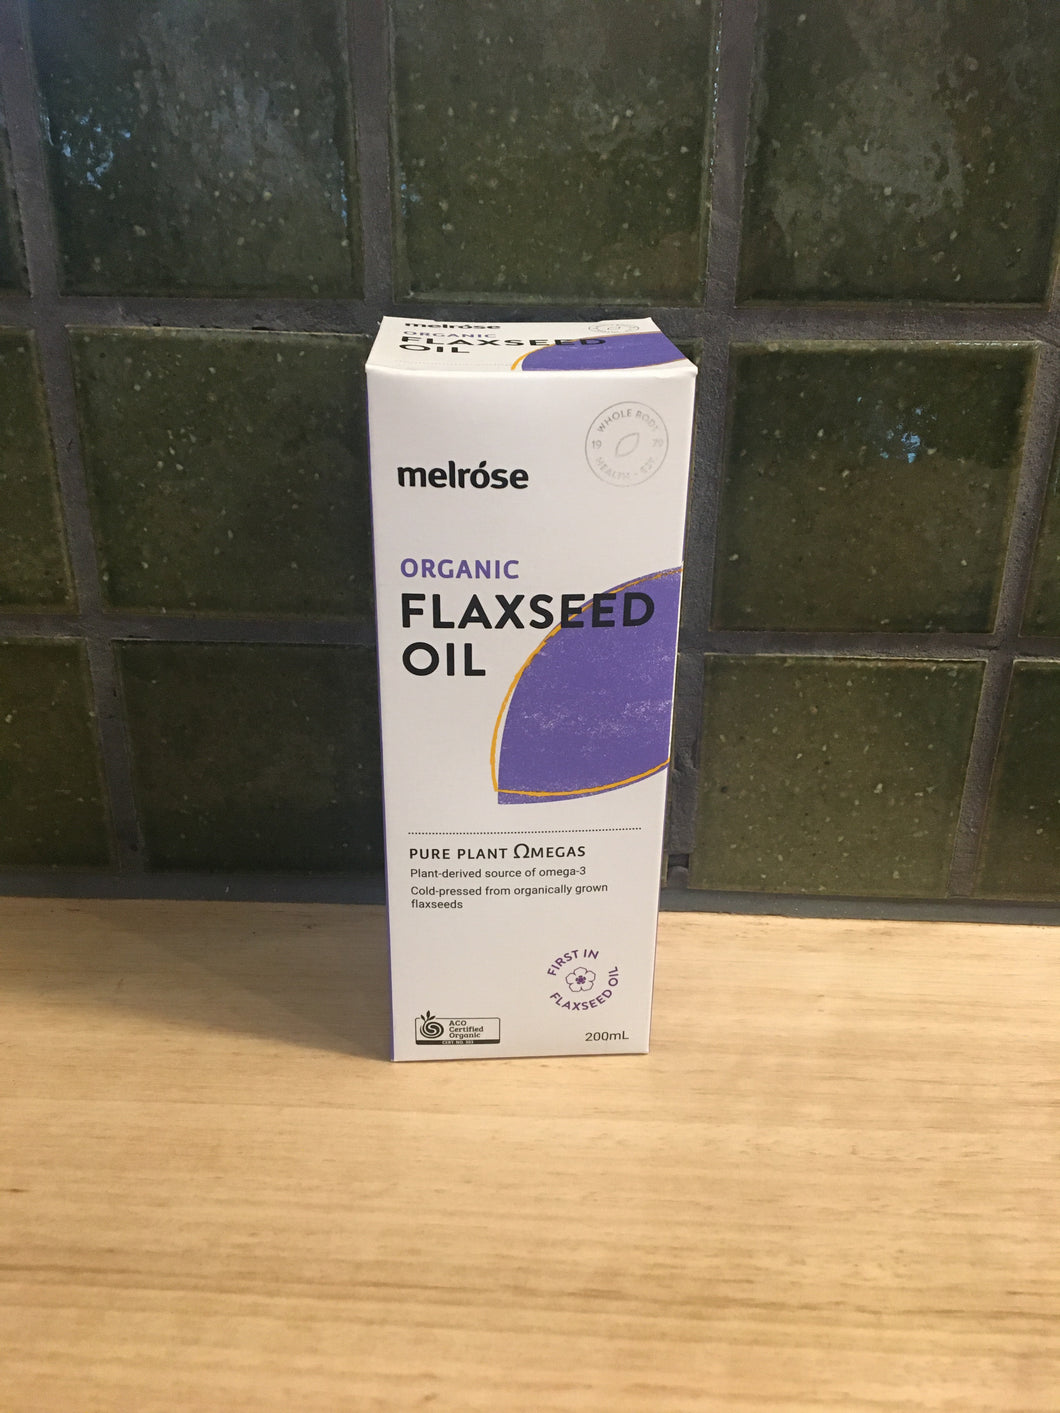 Melrose Flaxseed Oil - Organic 200mL